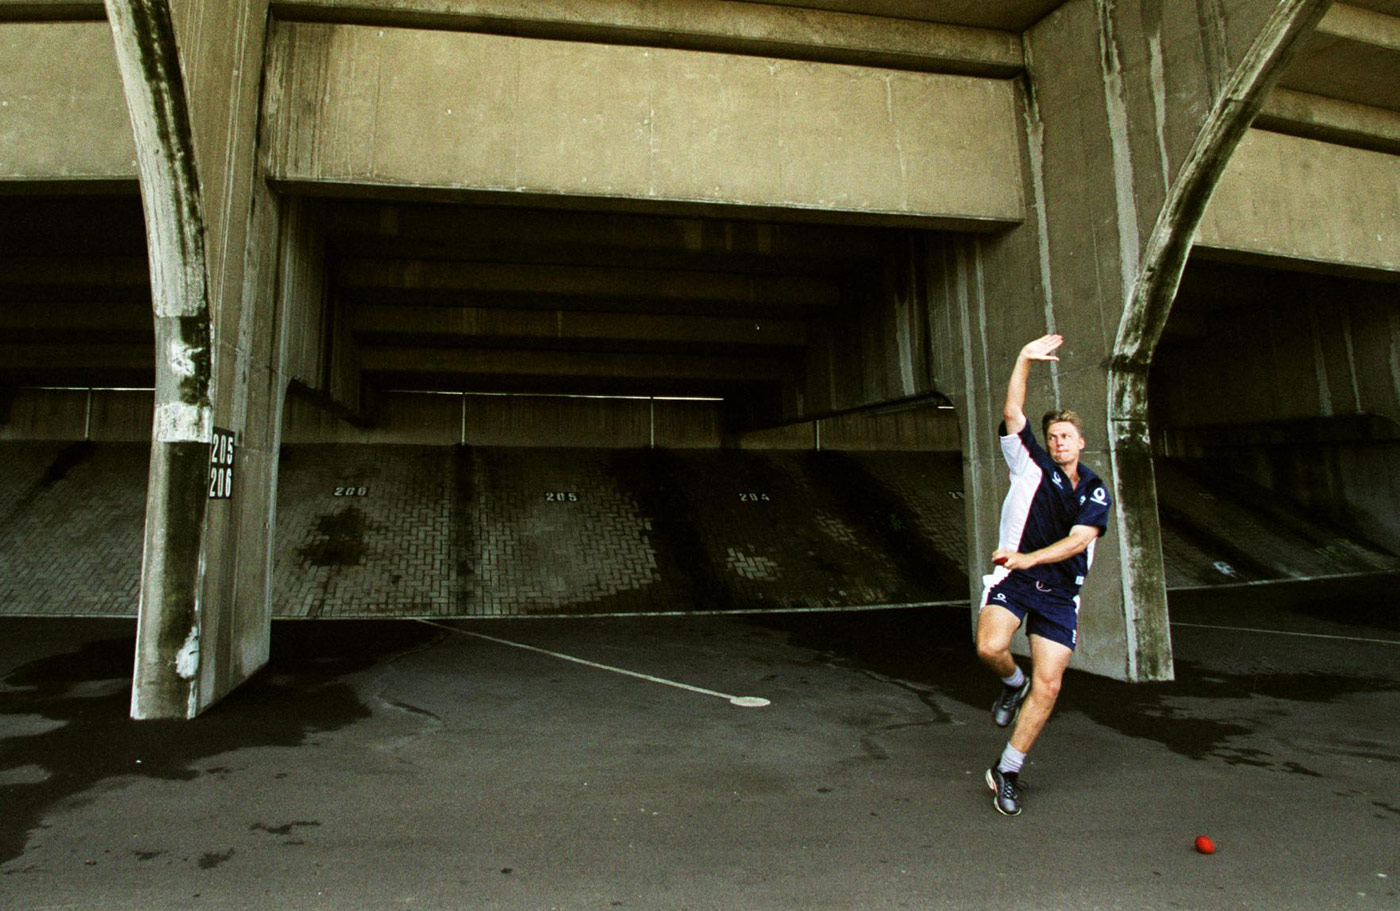 Mullally is put through his paces in the Kingsmead car park (rain had made the ground unusable) ahead of the third Test in 1999. He didn't make the cut